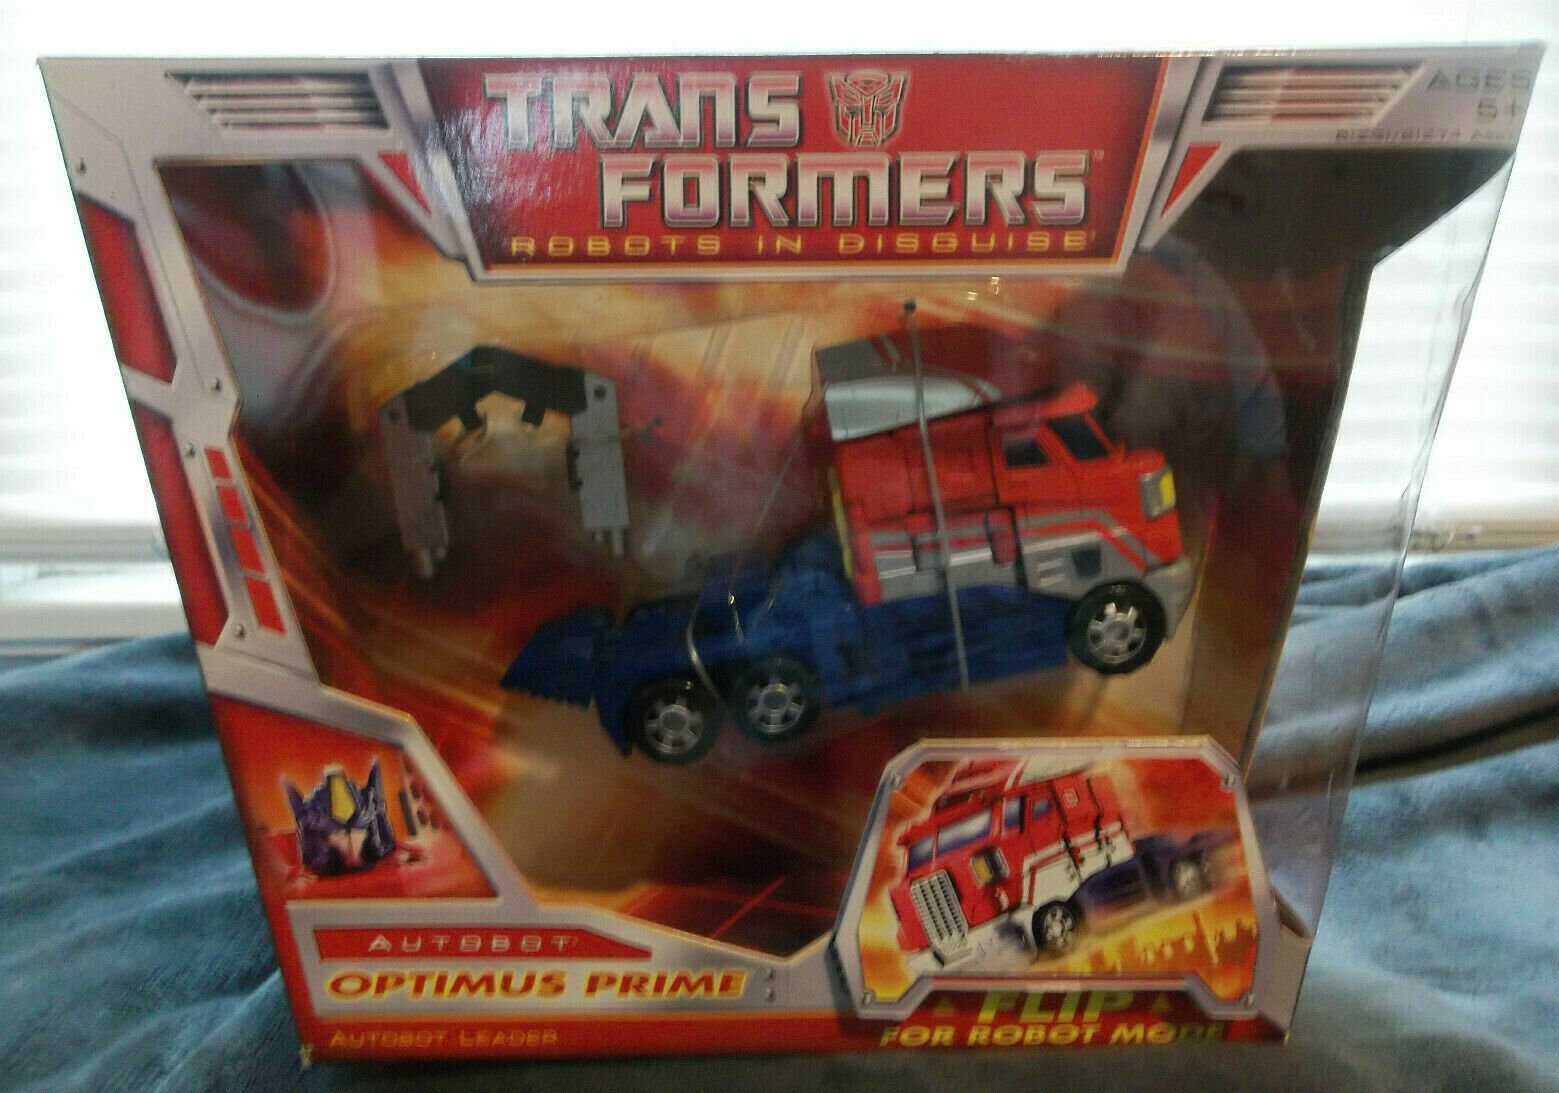 TRANSFORMERS Carbot OPTIMUS PRIME Carbot Leader NEW In Box 2006 Hasbro